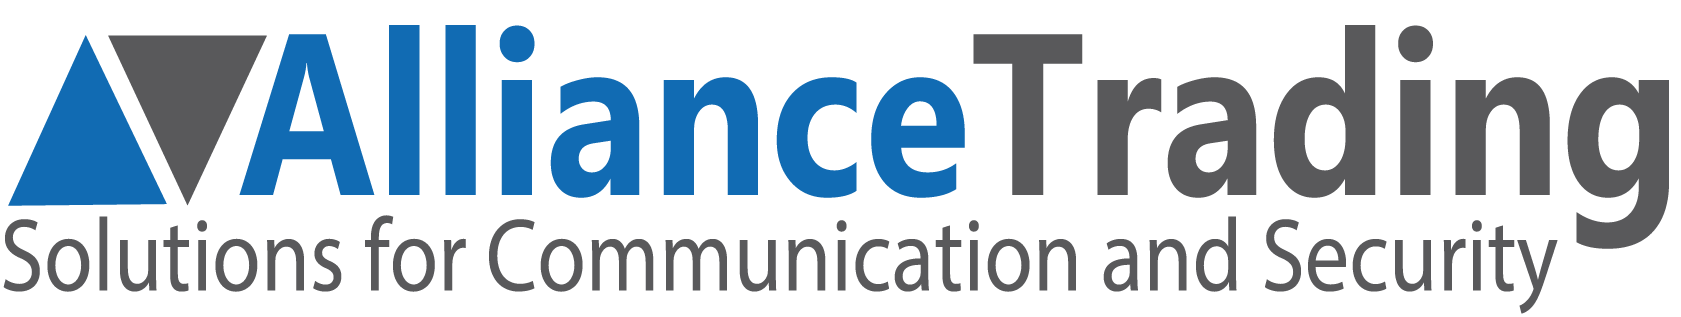 AllianceTrading is a contactcenter4all partner